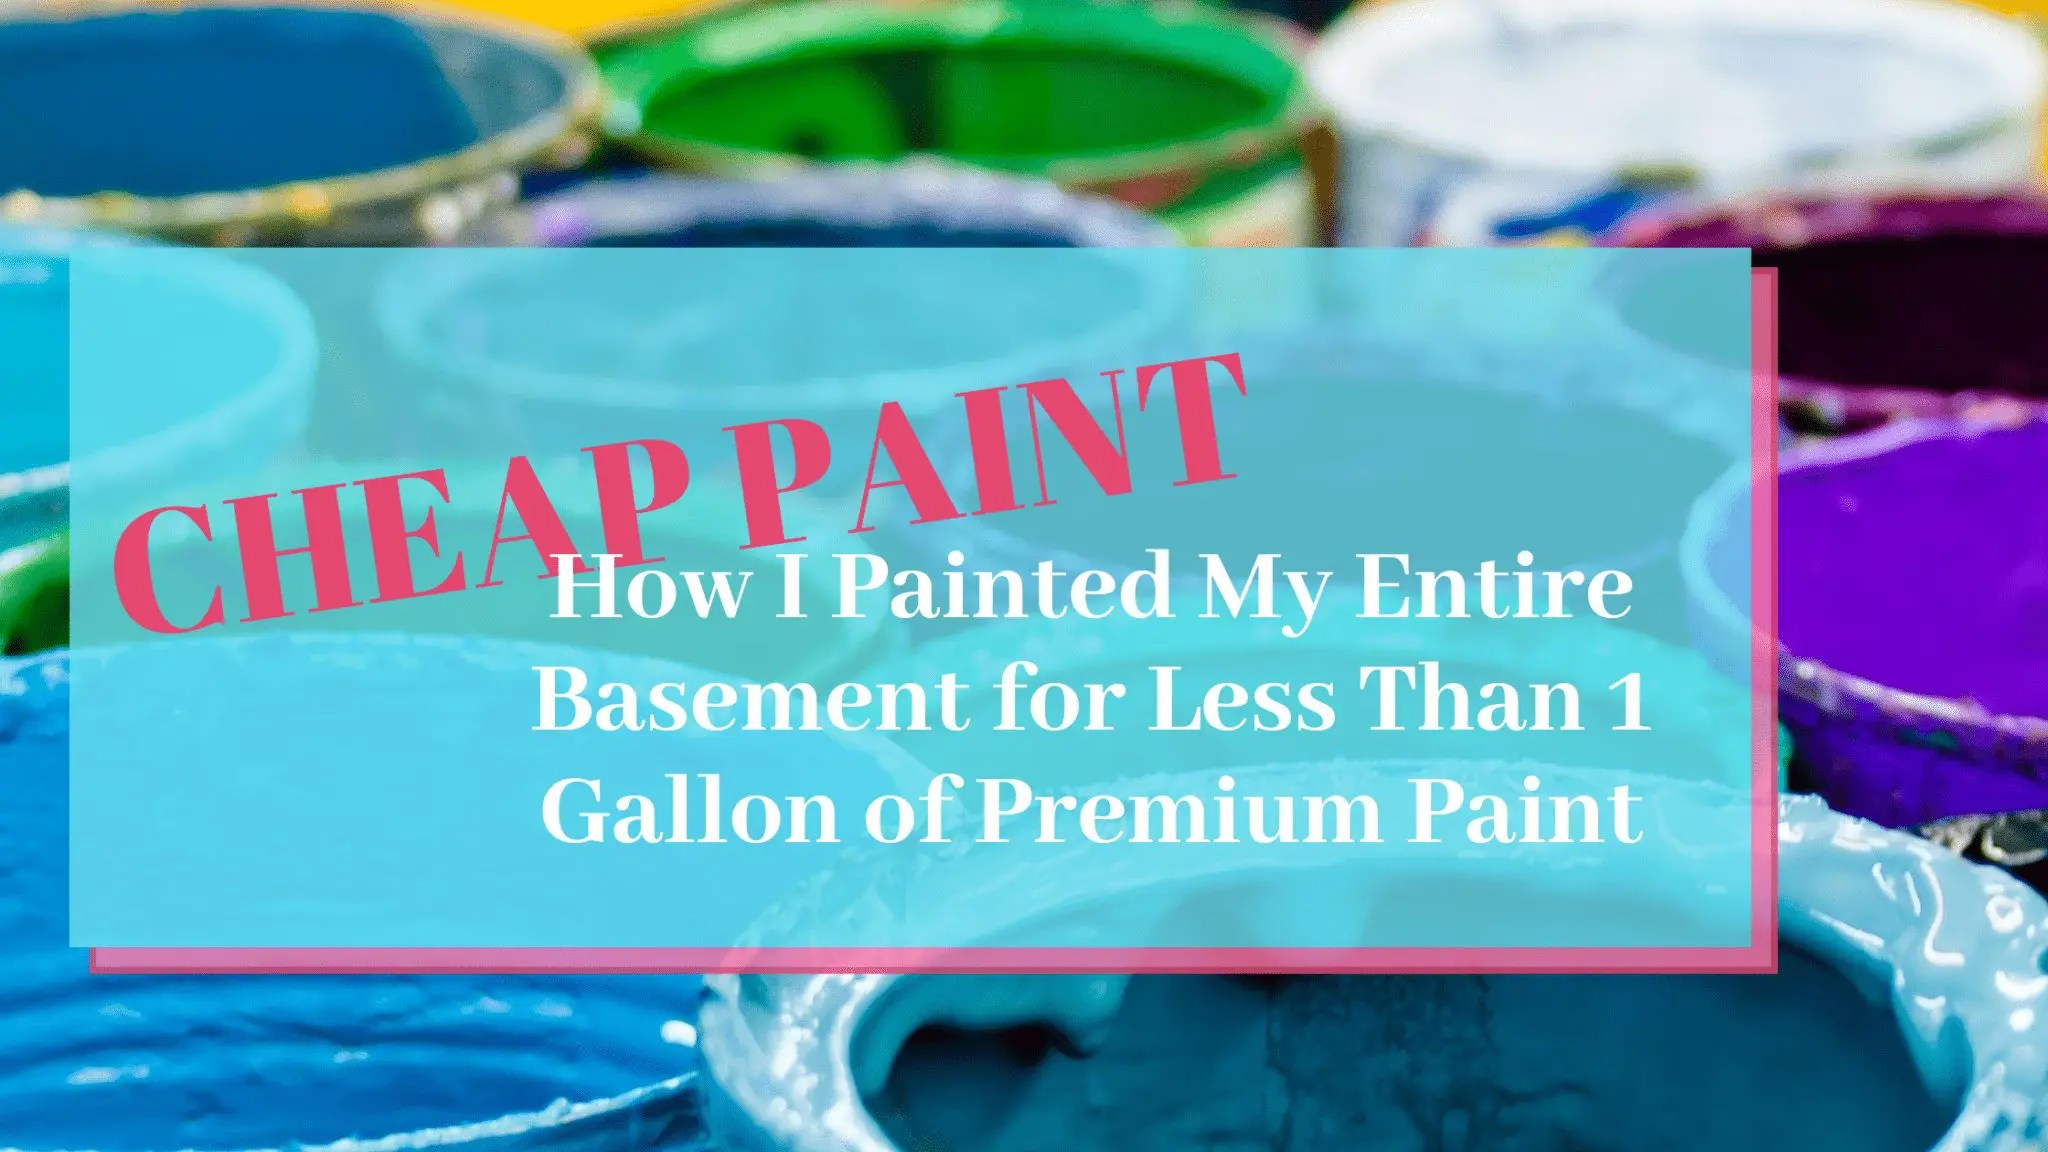 Cheap Paint – How I Painted My Entire Basement for Less Than 1 Gallon of Premium Paint